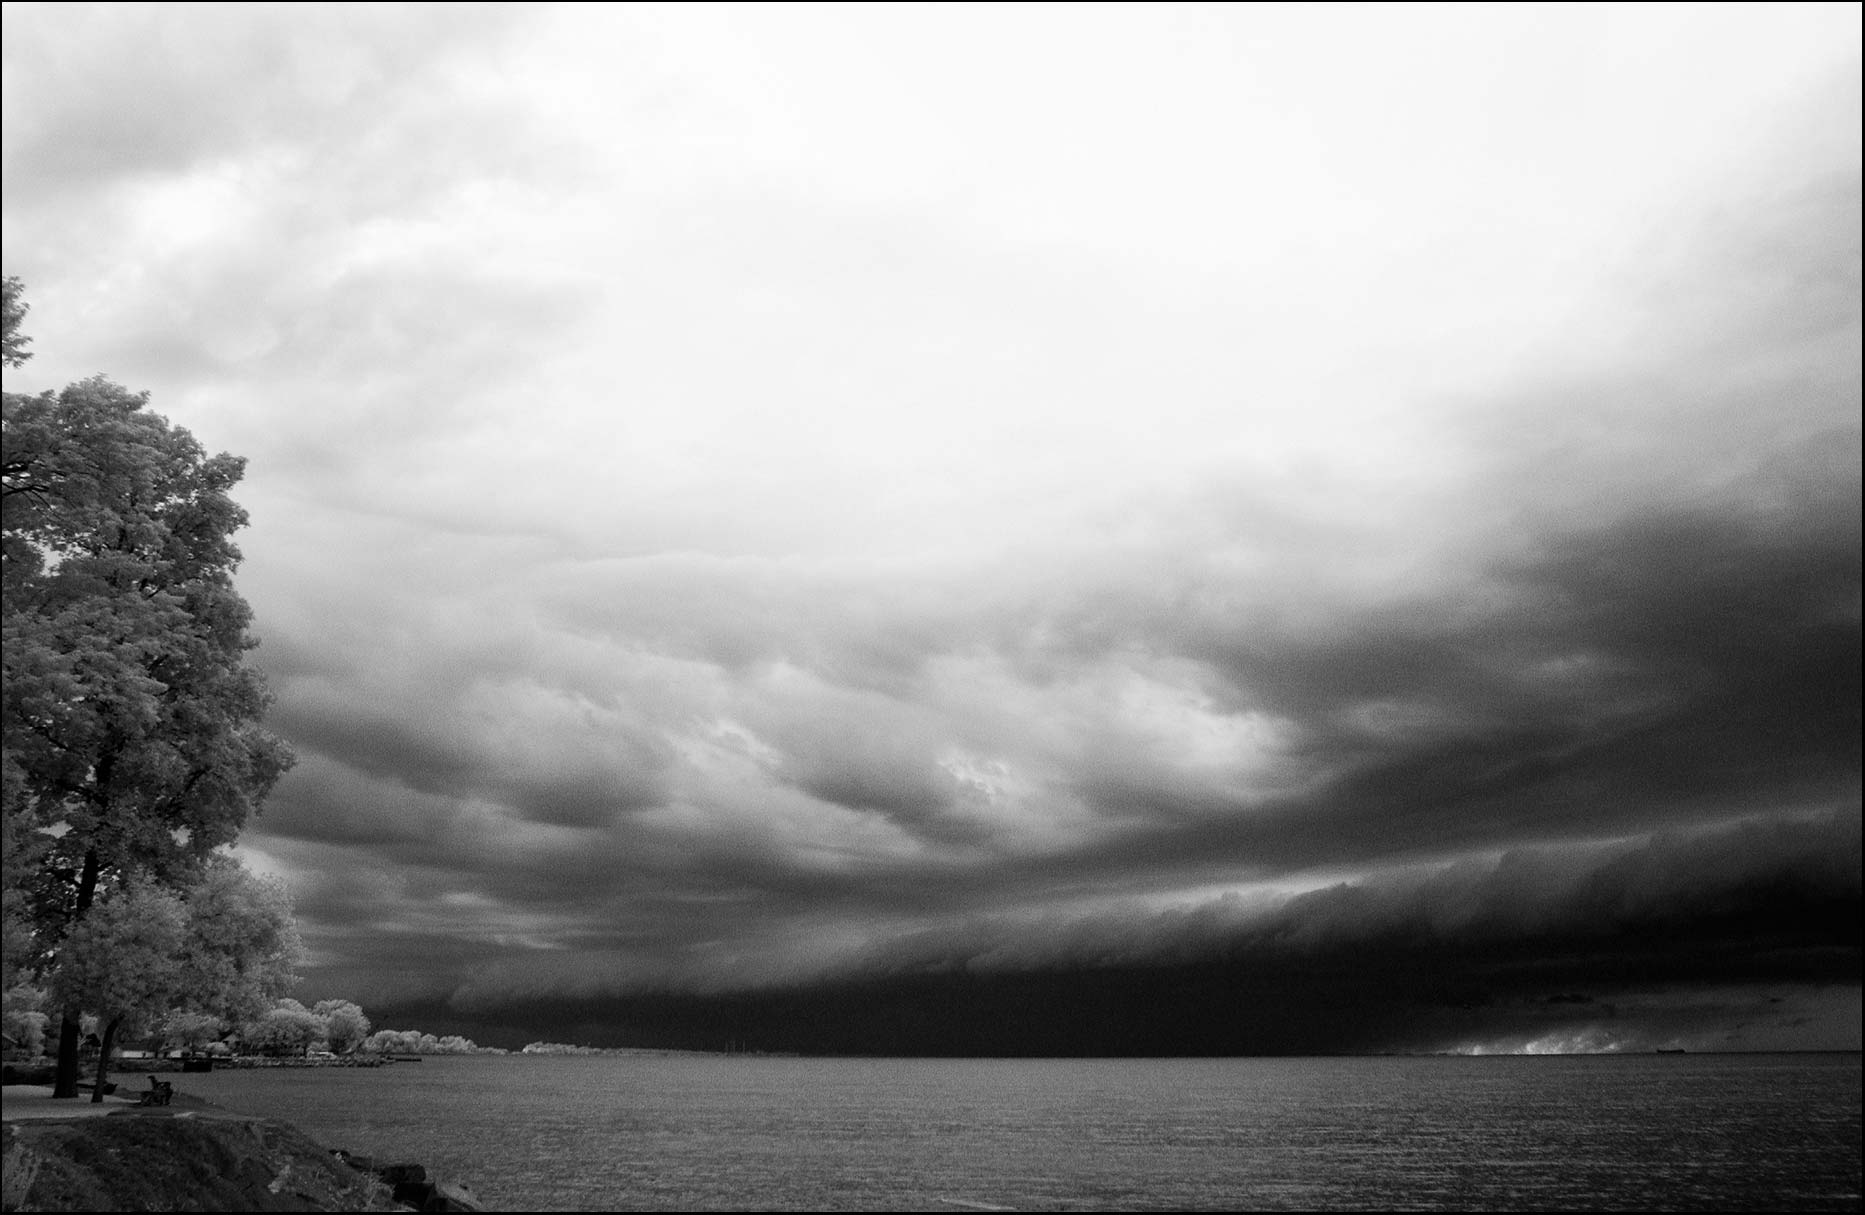 Lake Erie Ohio storm clouds shot in black and white infrared